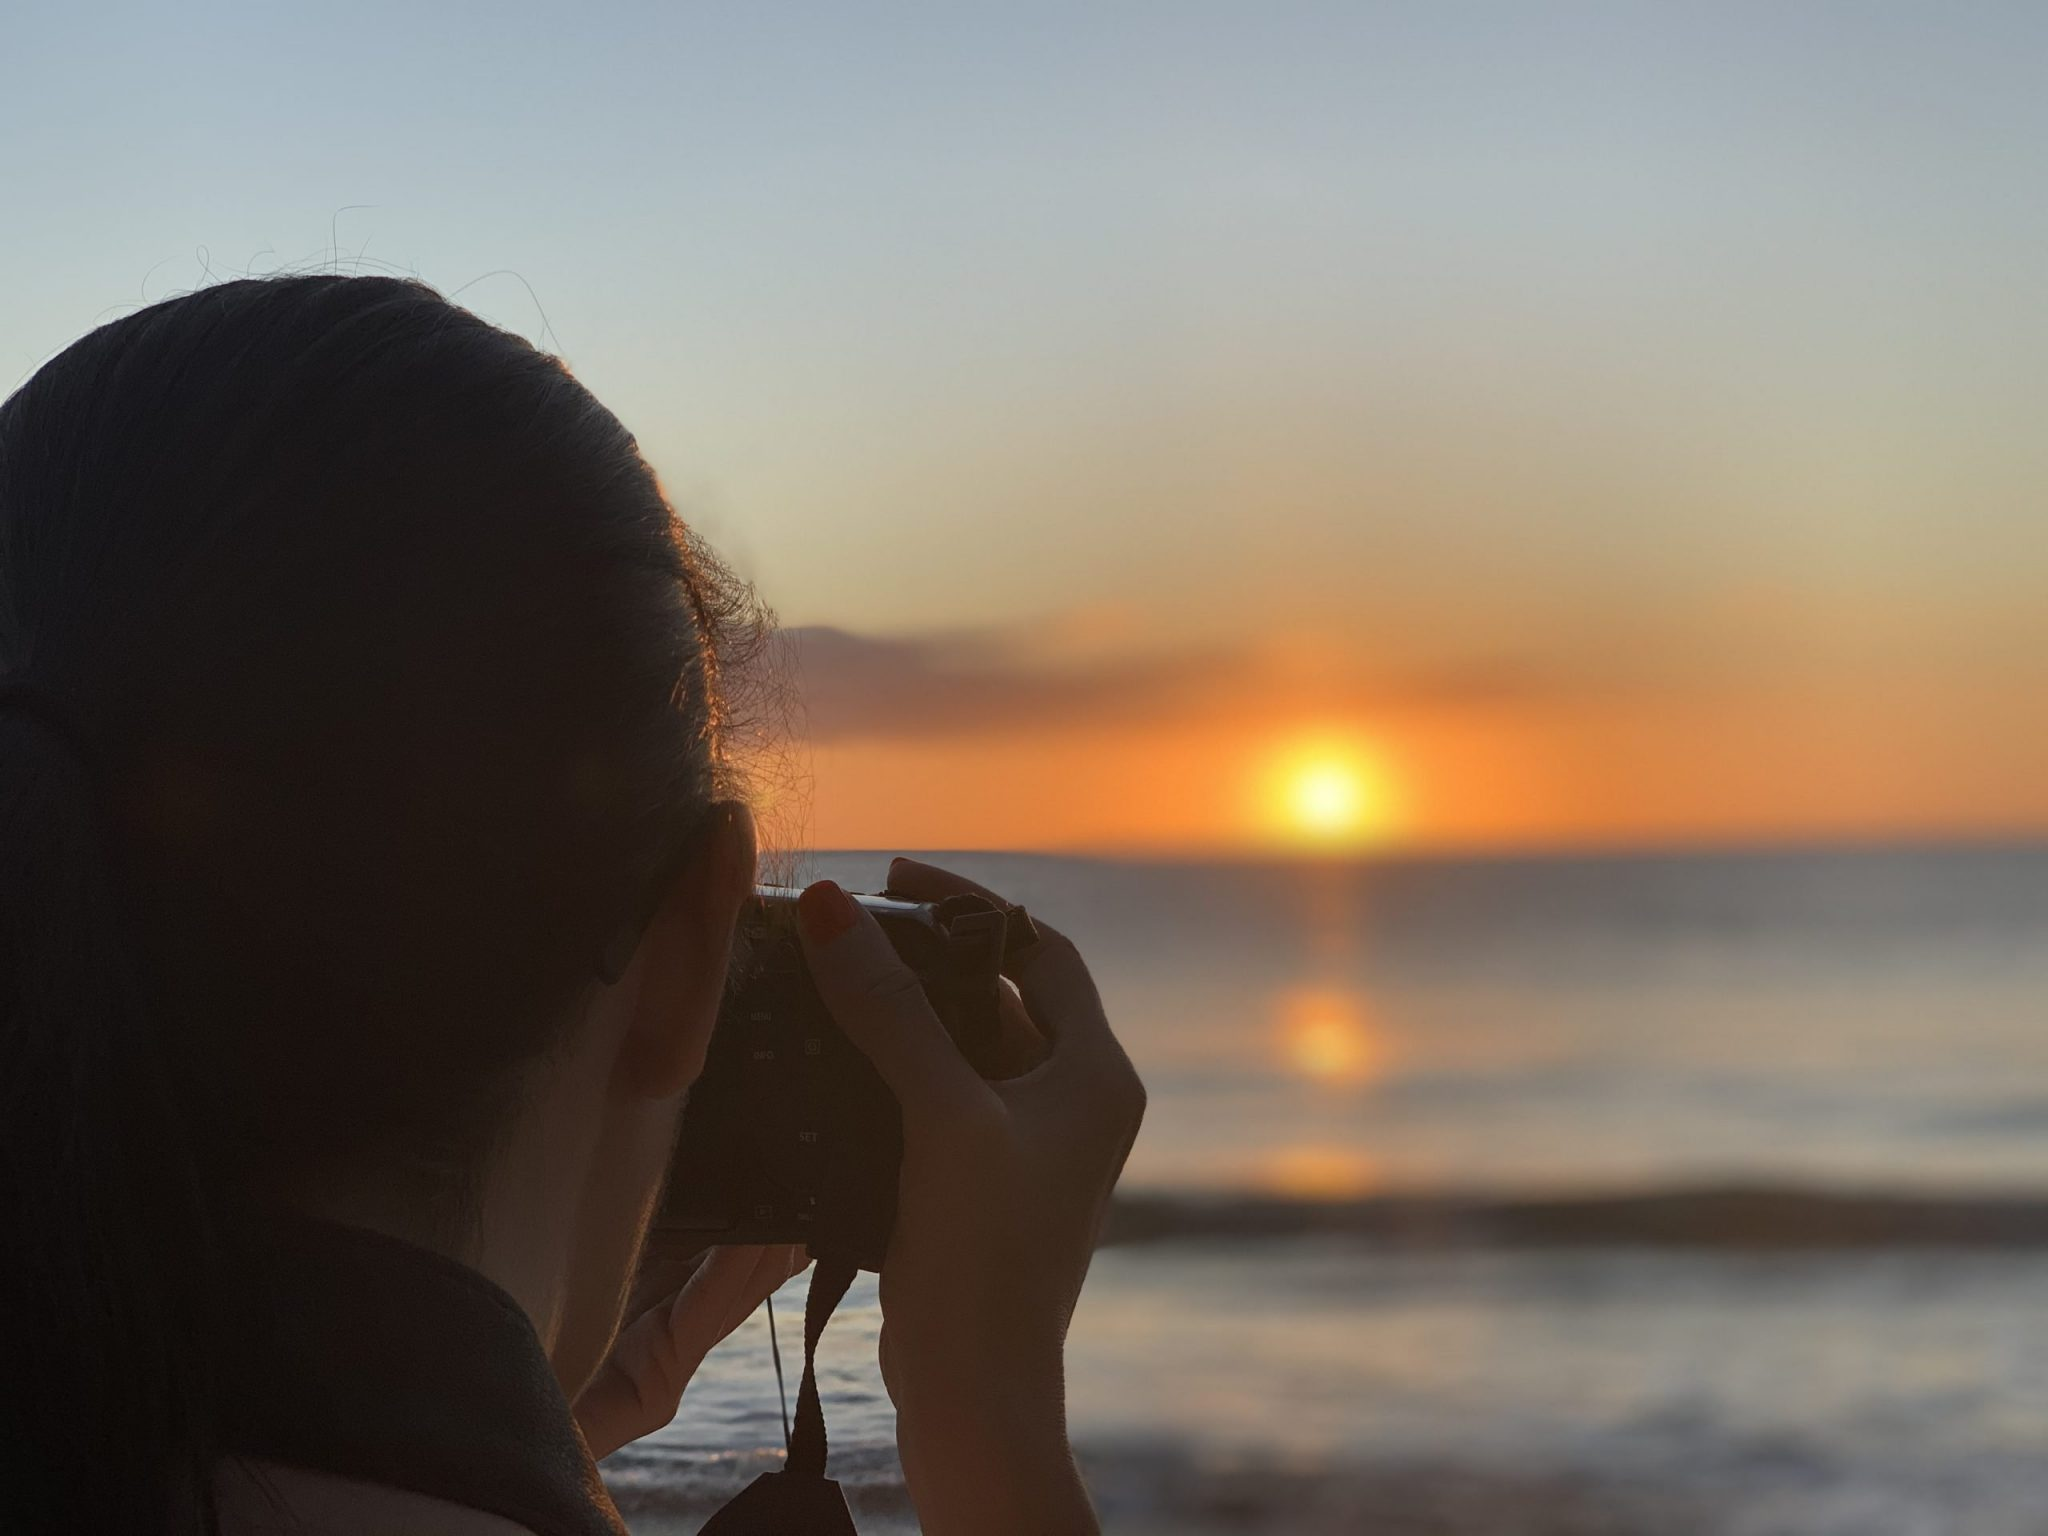 Leesa taking a photo of a beach sunset